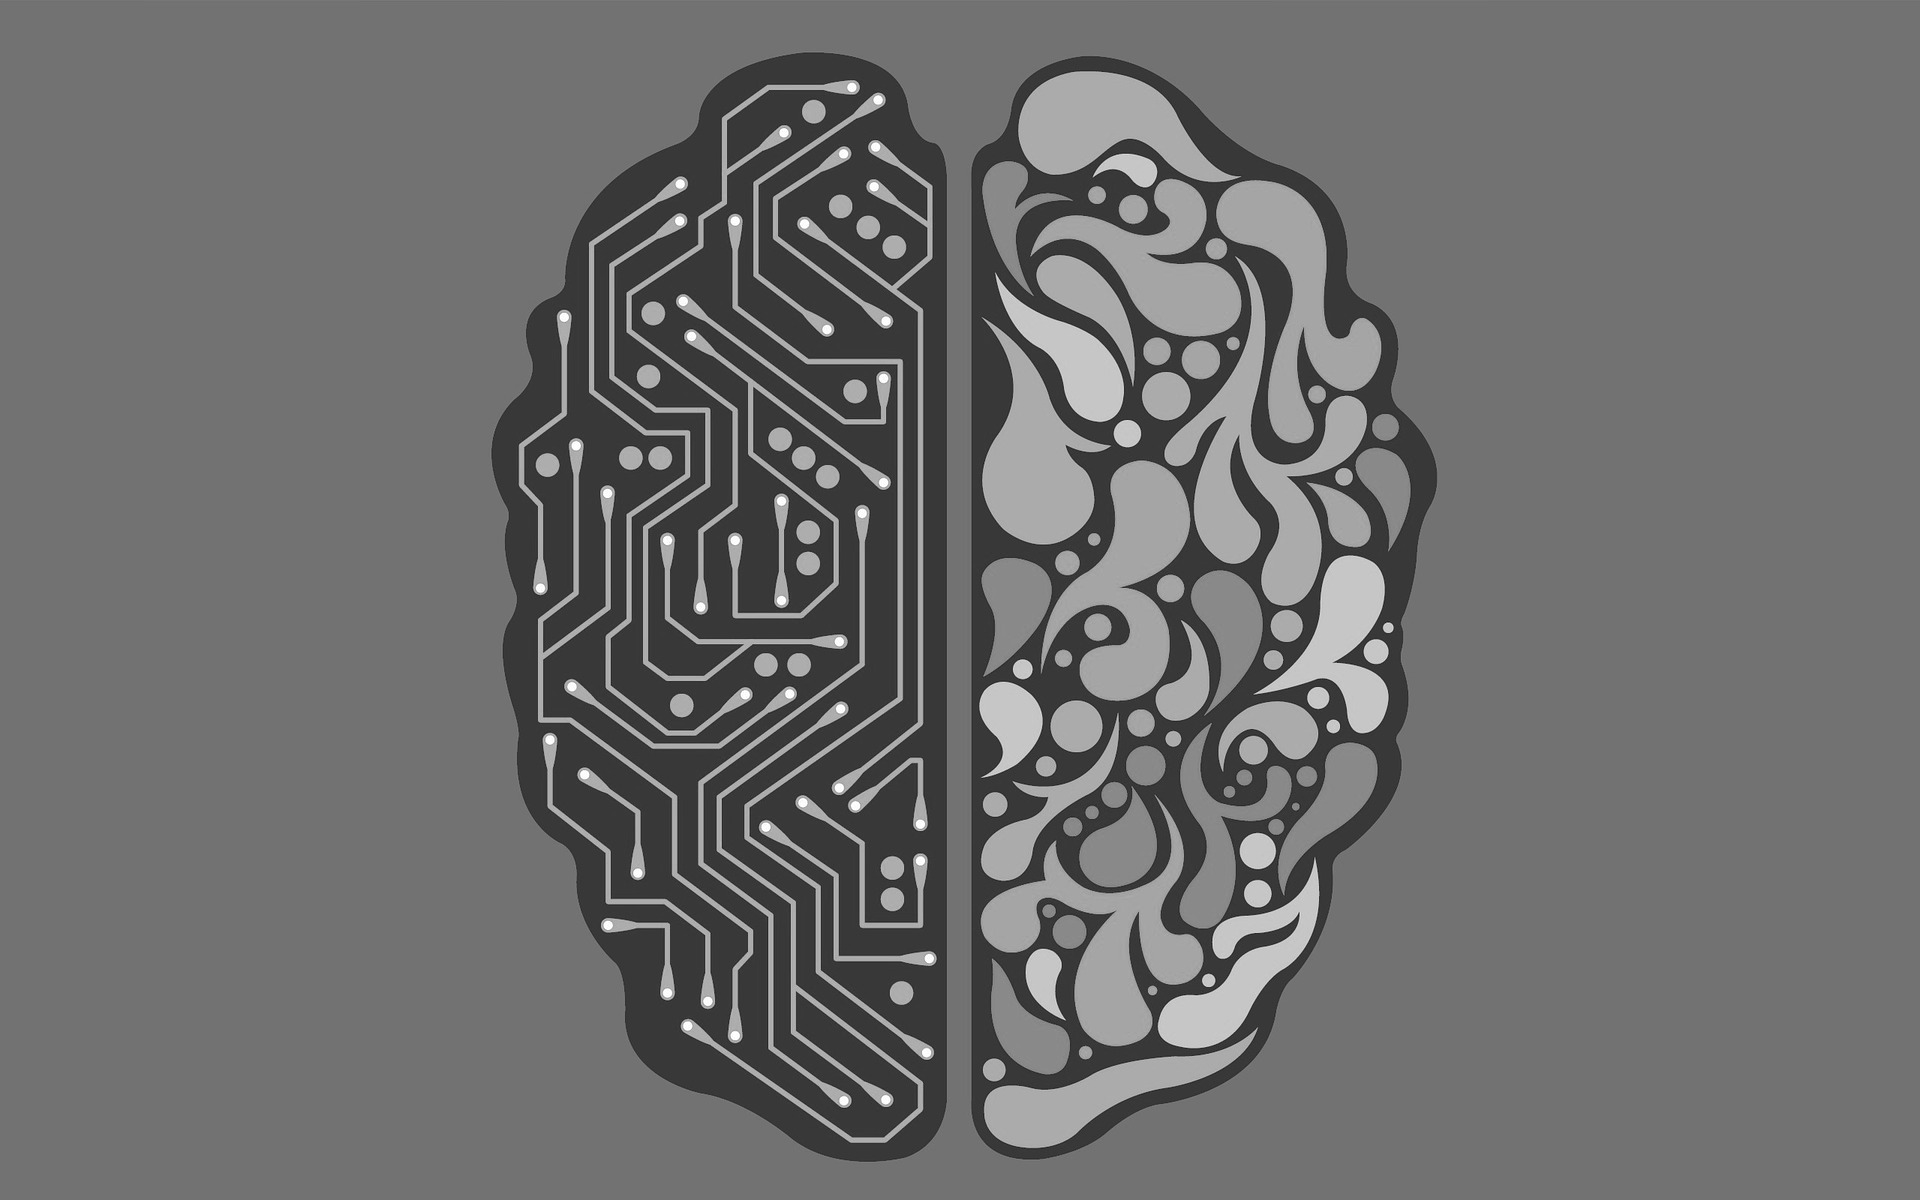 [PODCAST] An Important Lesson When It Comes To Machine Learning